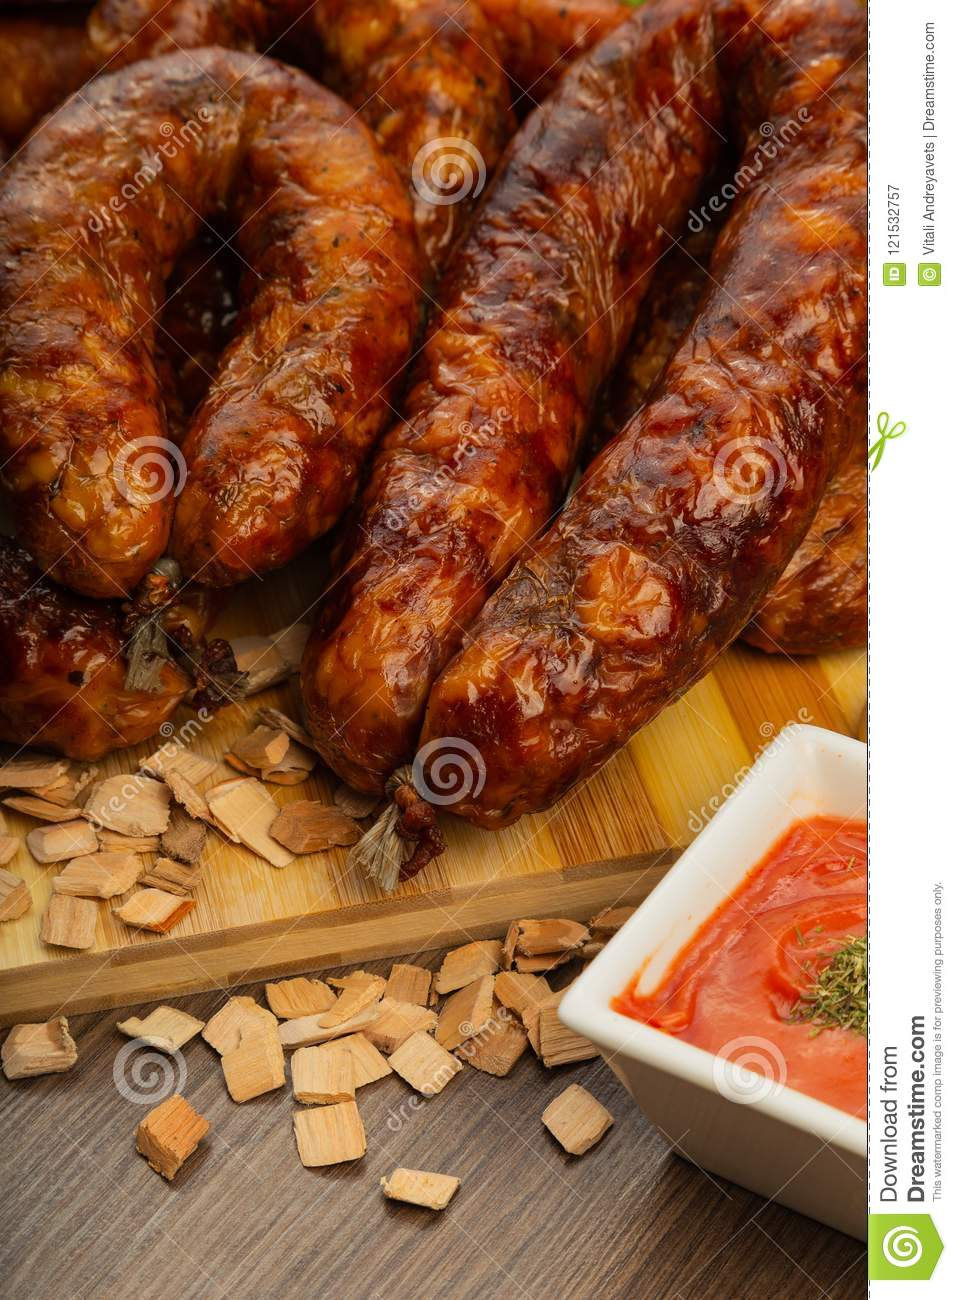 Homemade sausage on a wooden background with seasonings and sauce